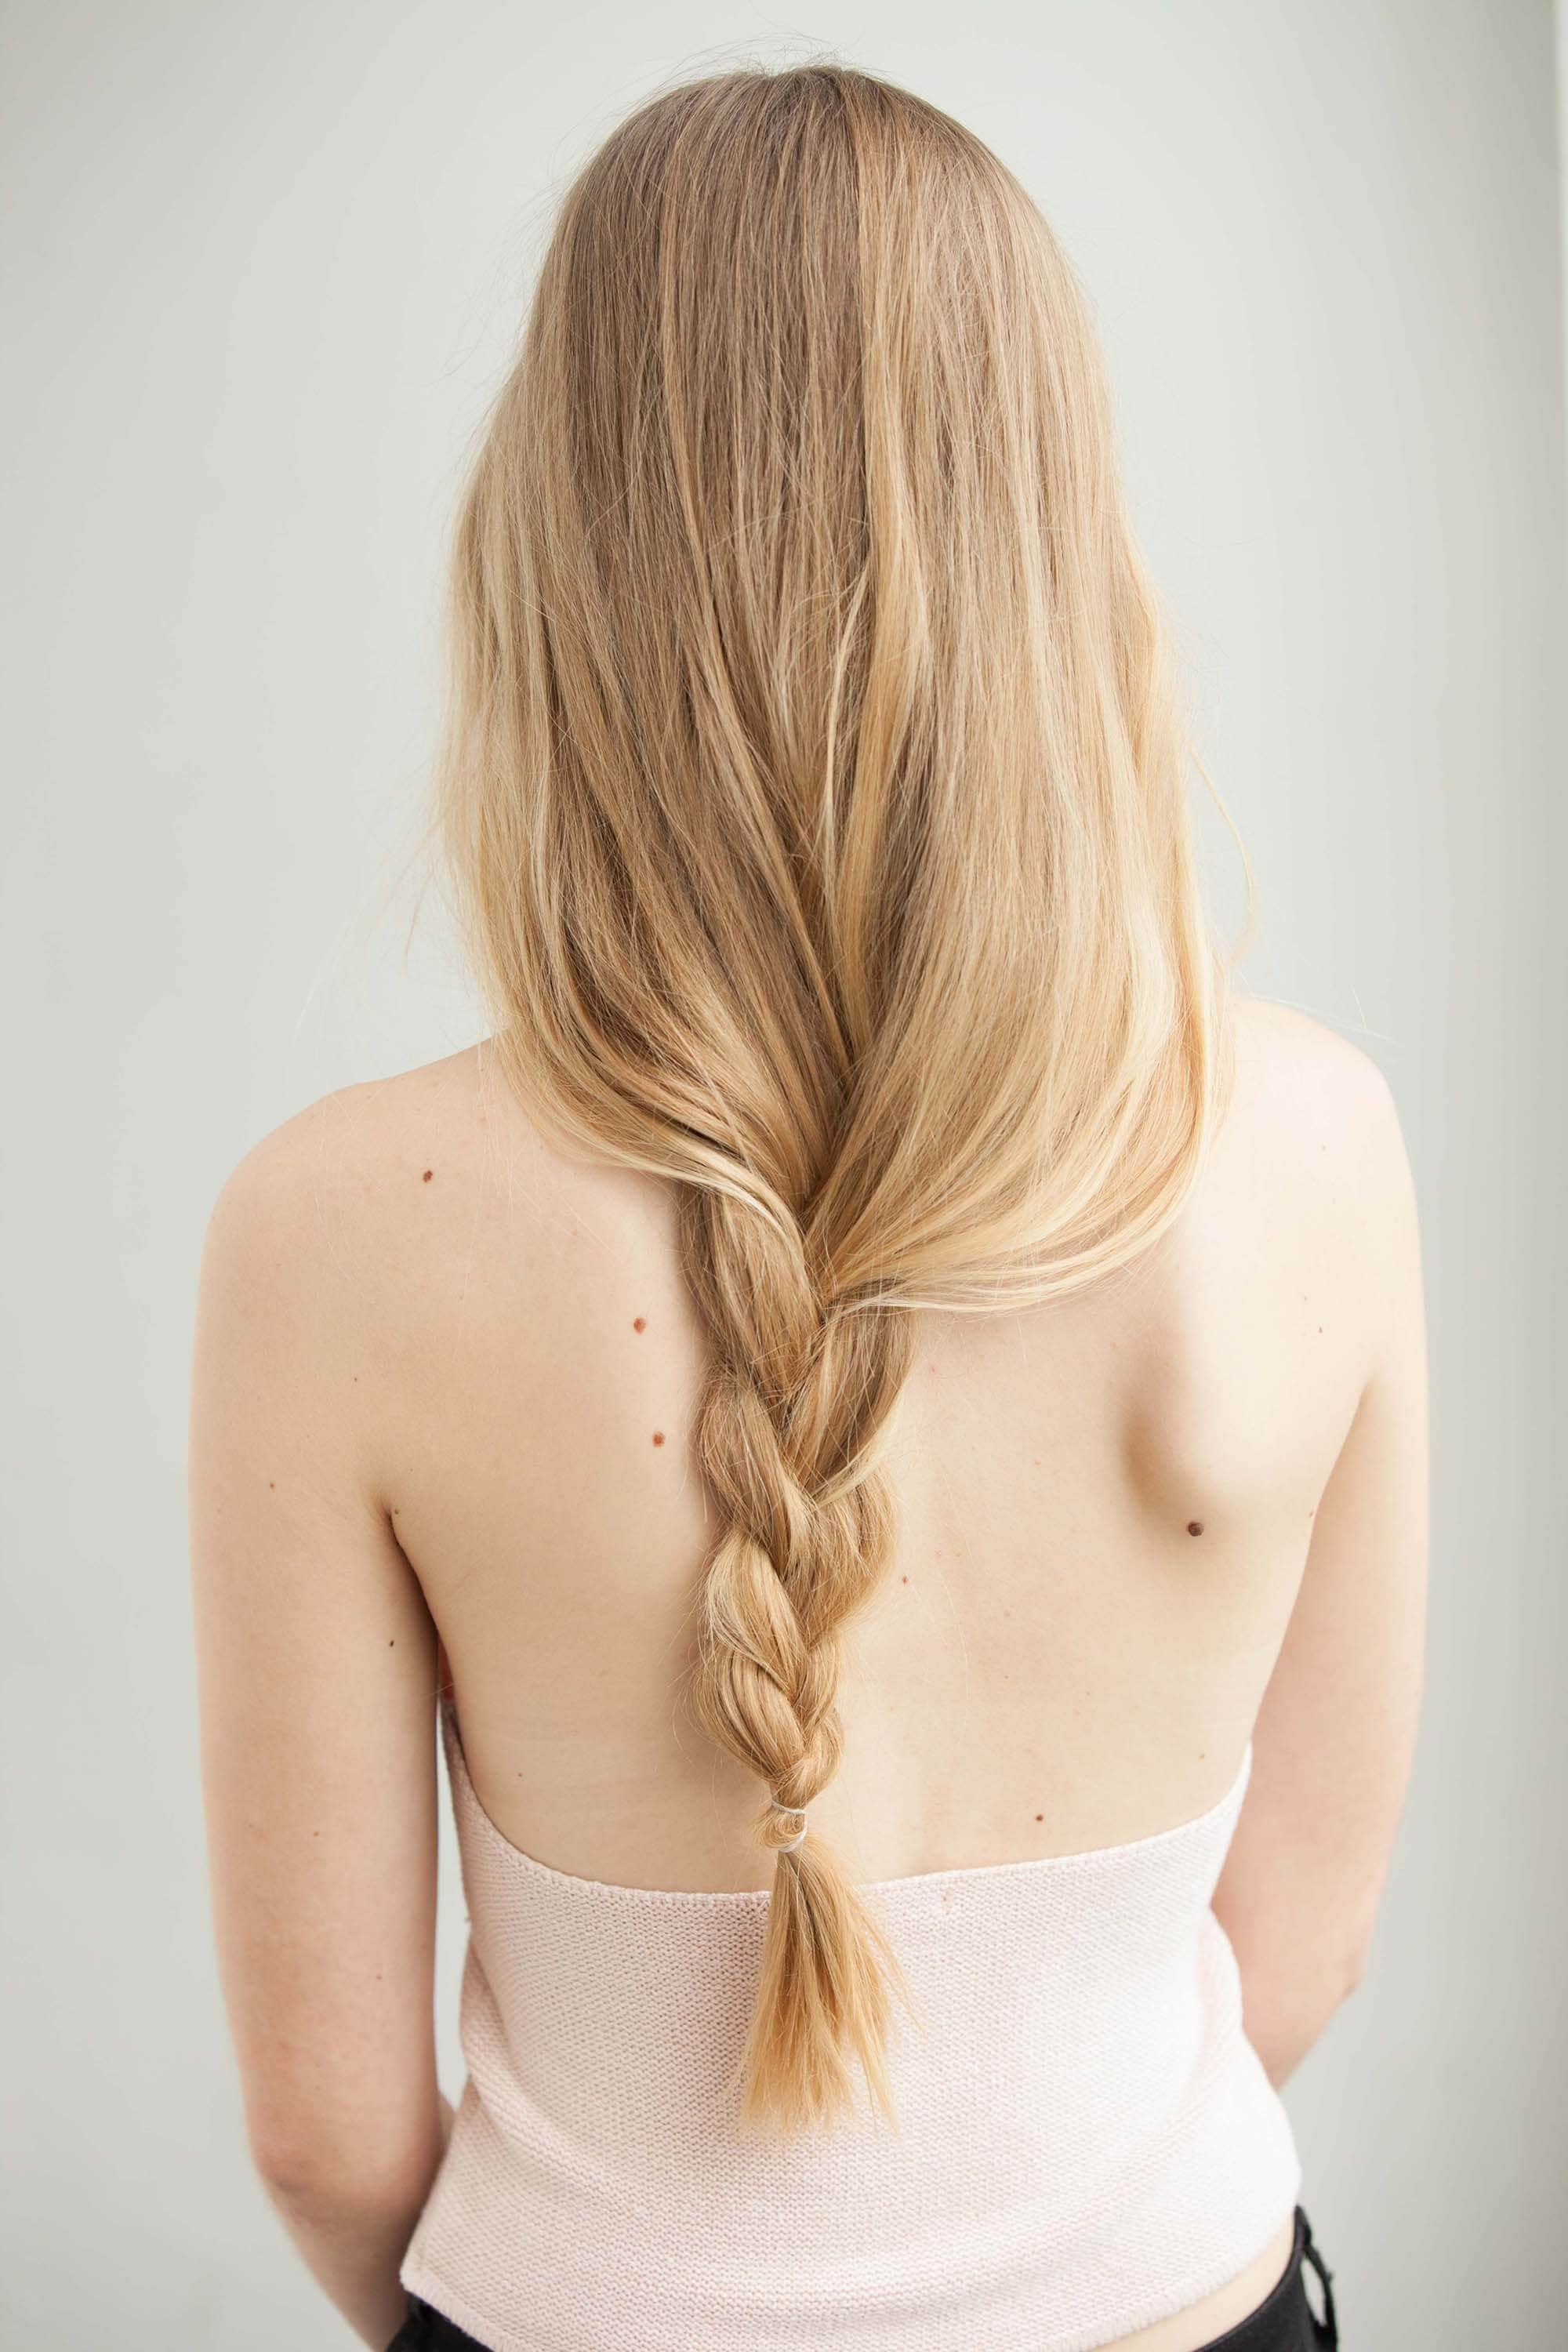 Wondrous Easy Braid Hairstyles You Can Do Even If Youre Not A Hair Pro Schematic Wiring Diagrams Phreekkolirunnerswayorg